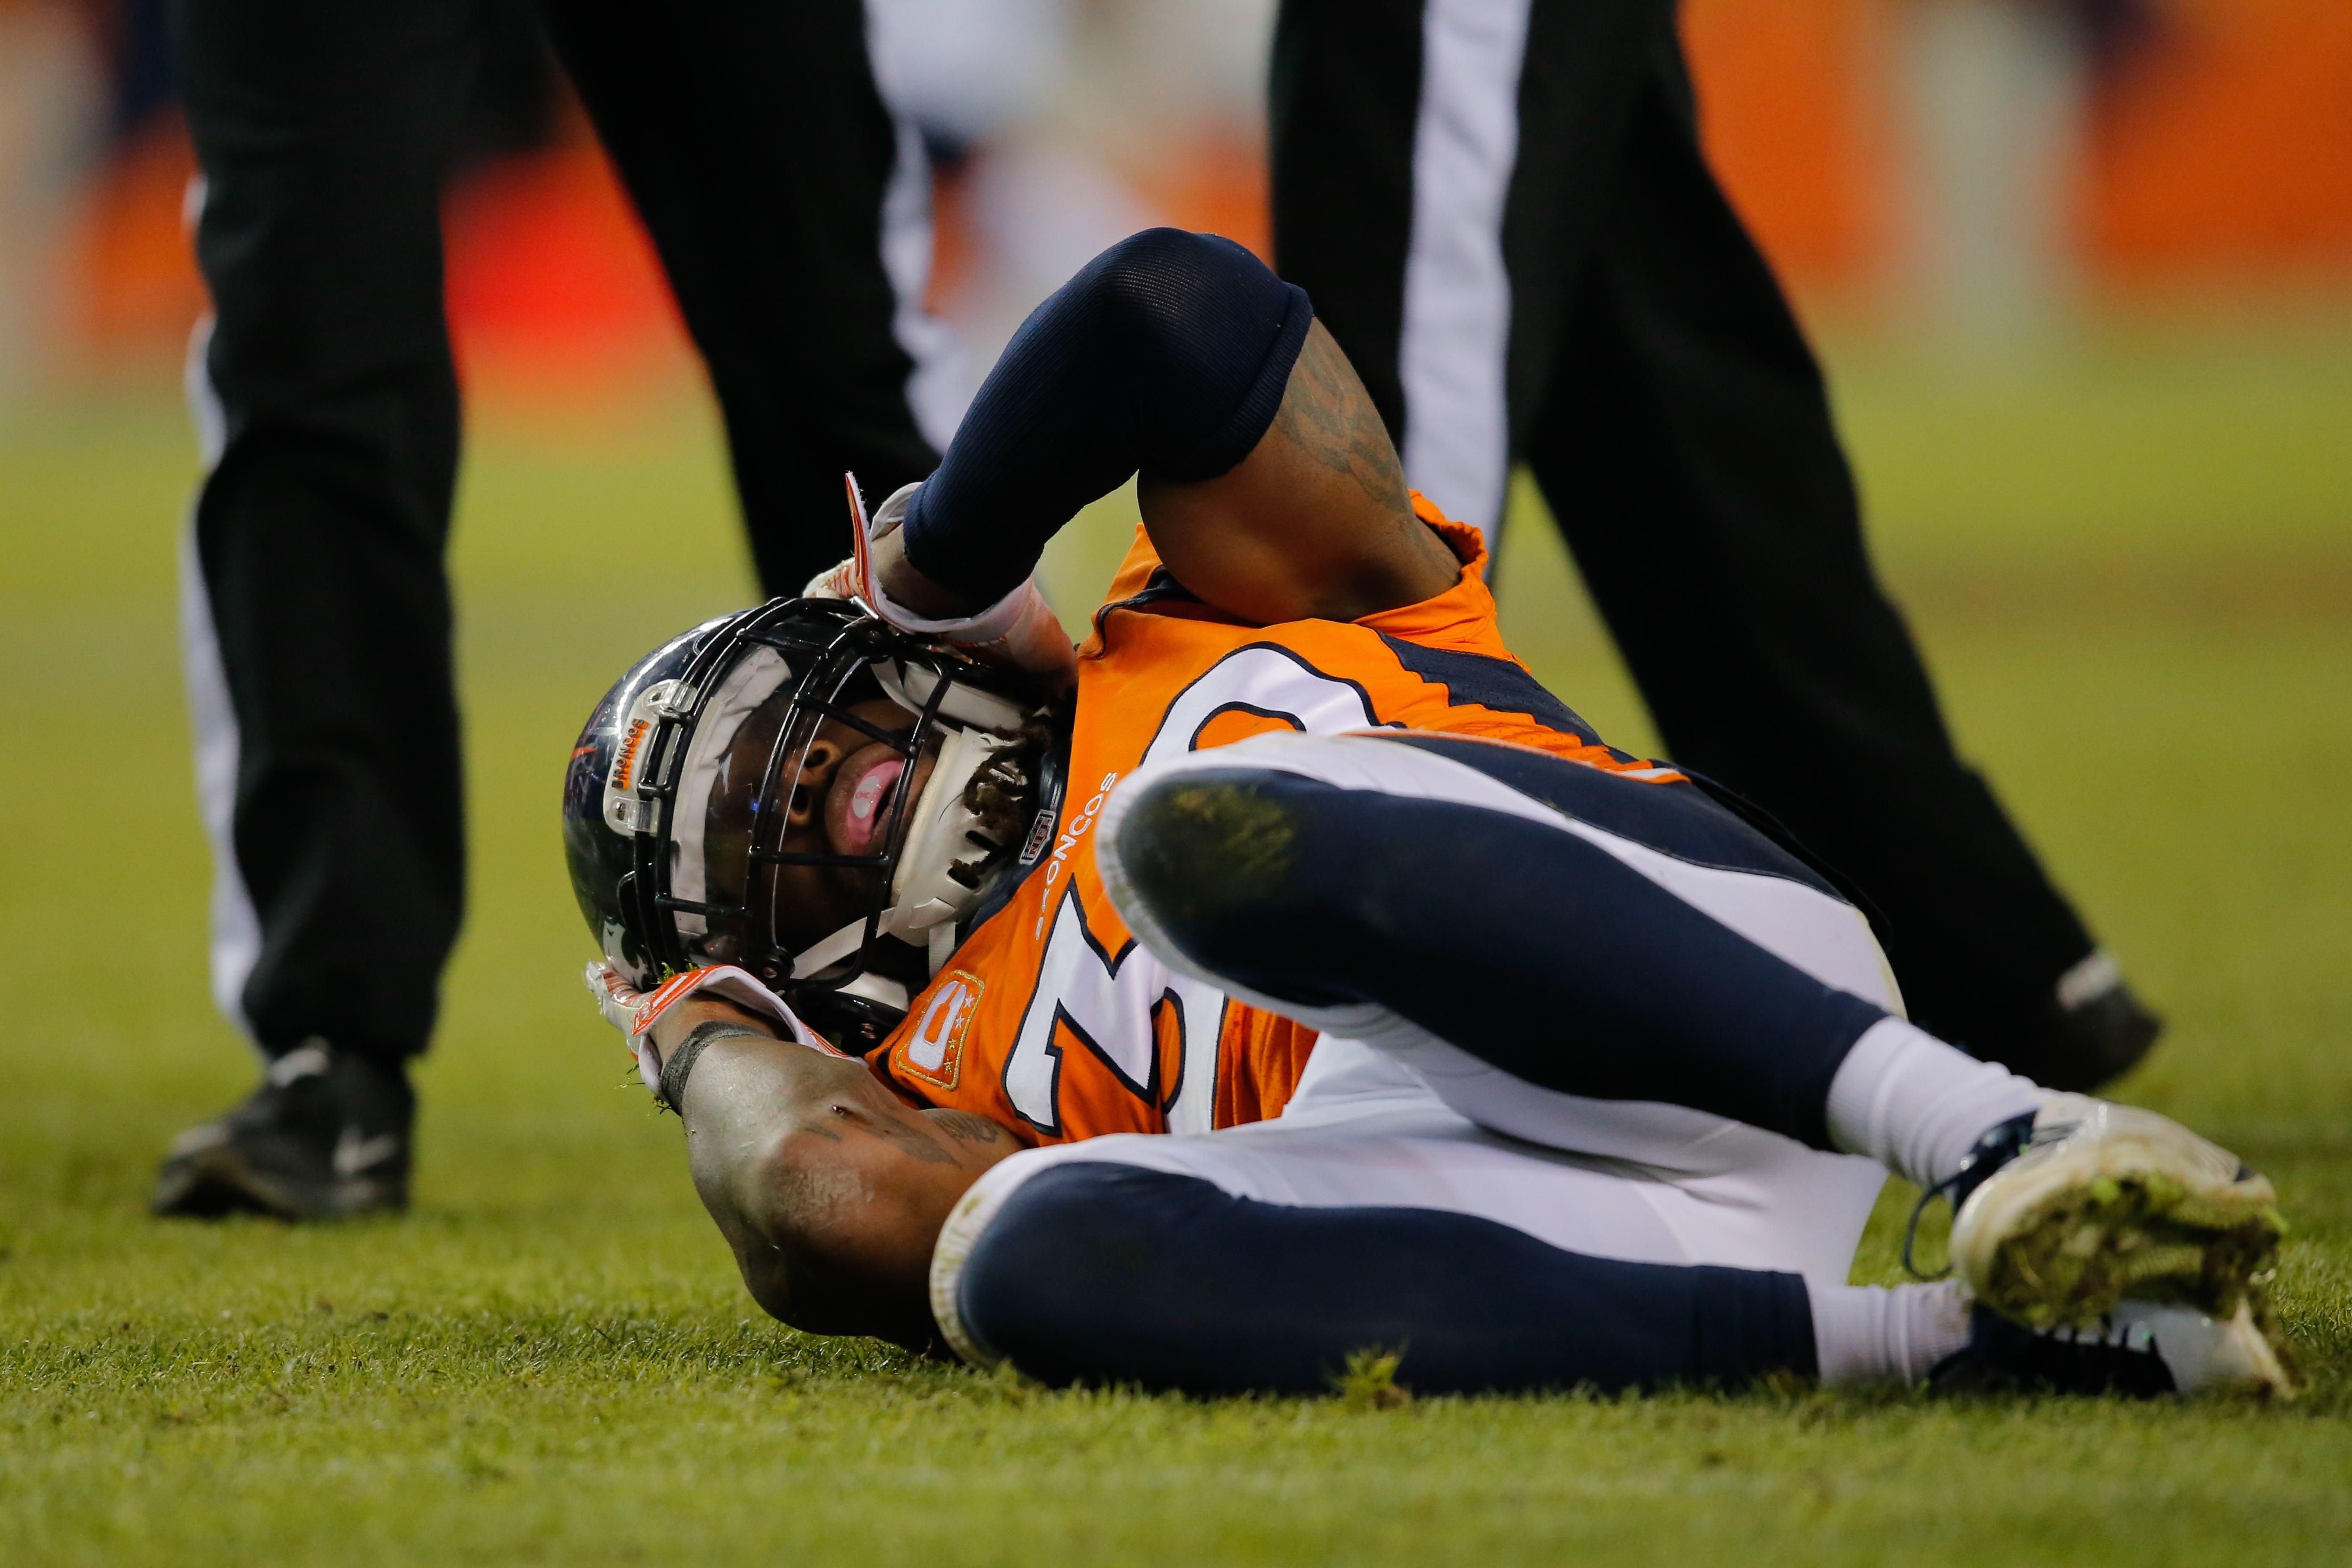 NFL Concussions Fast Facts